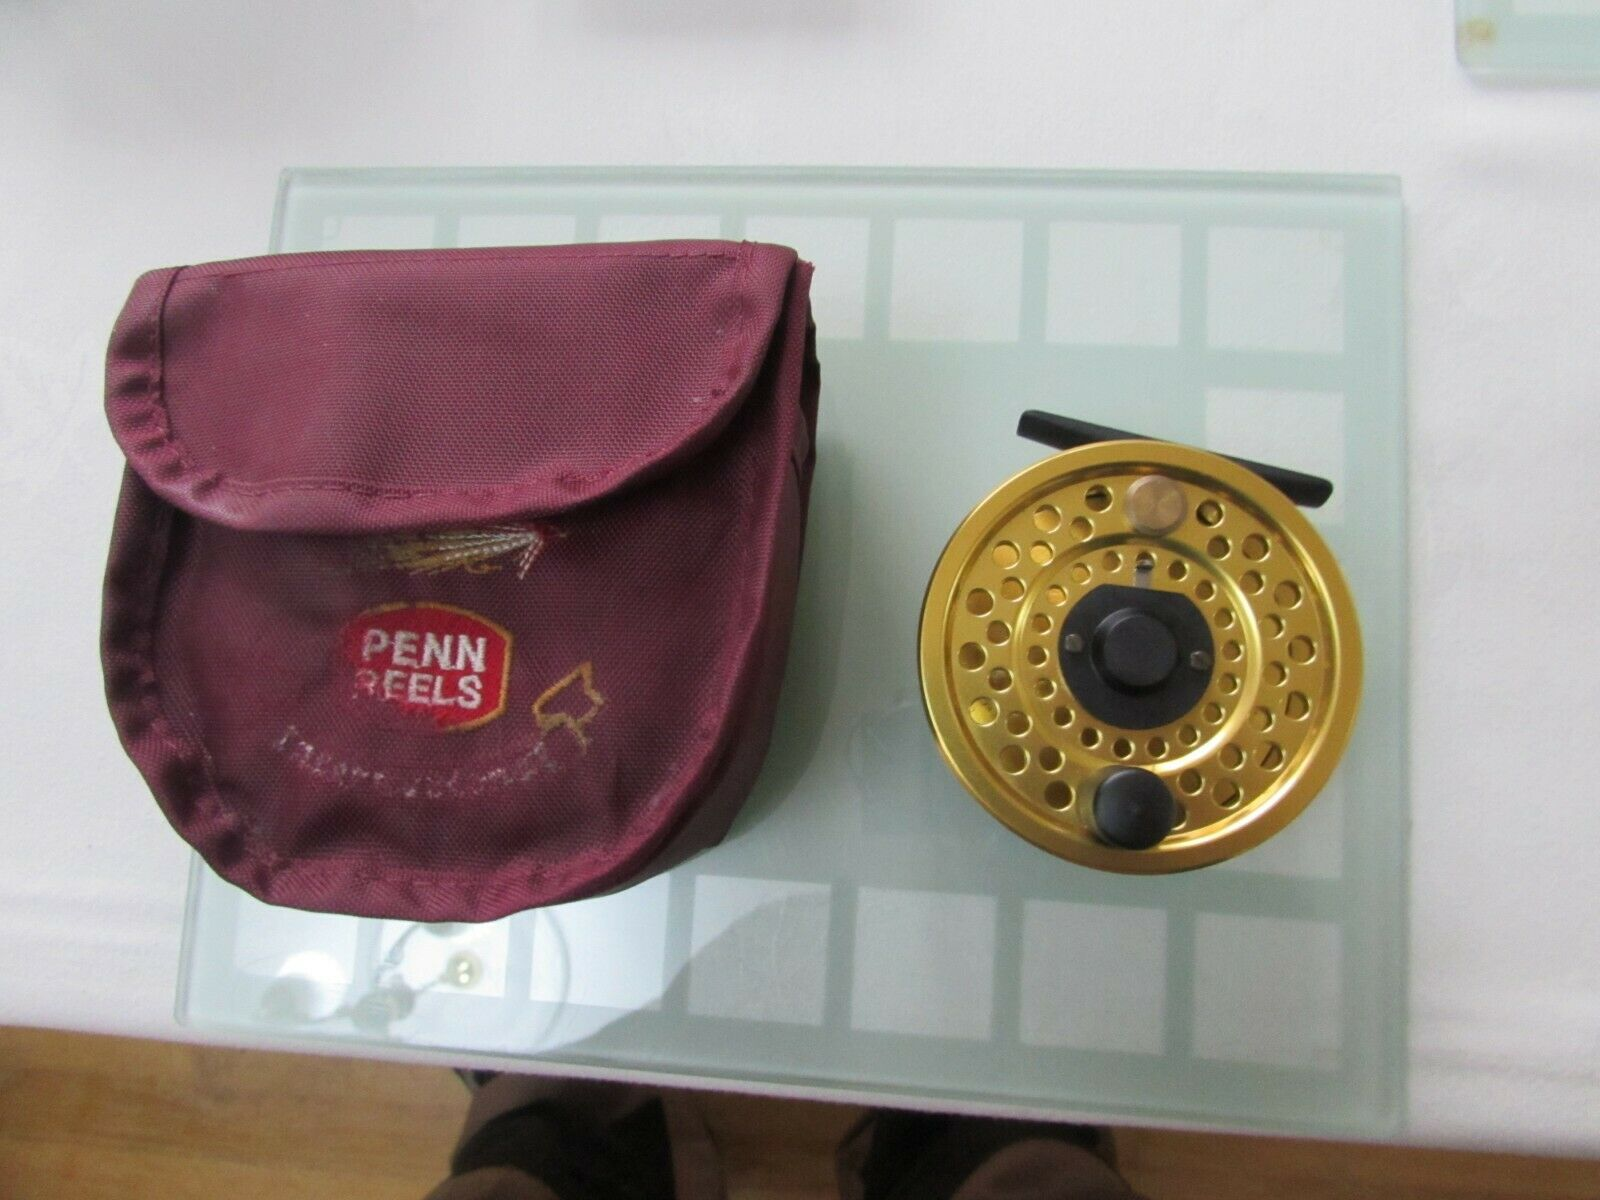 Stunning vintage sharpes penn gold medal freshwater no 1  trout fly fishing reel  authentic quality